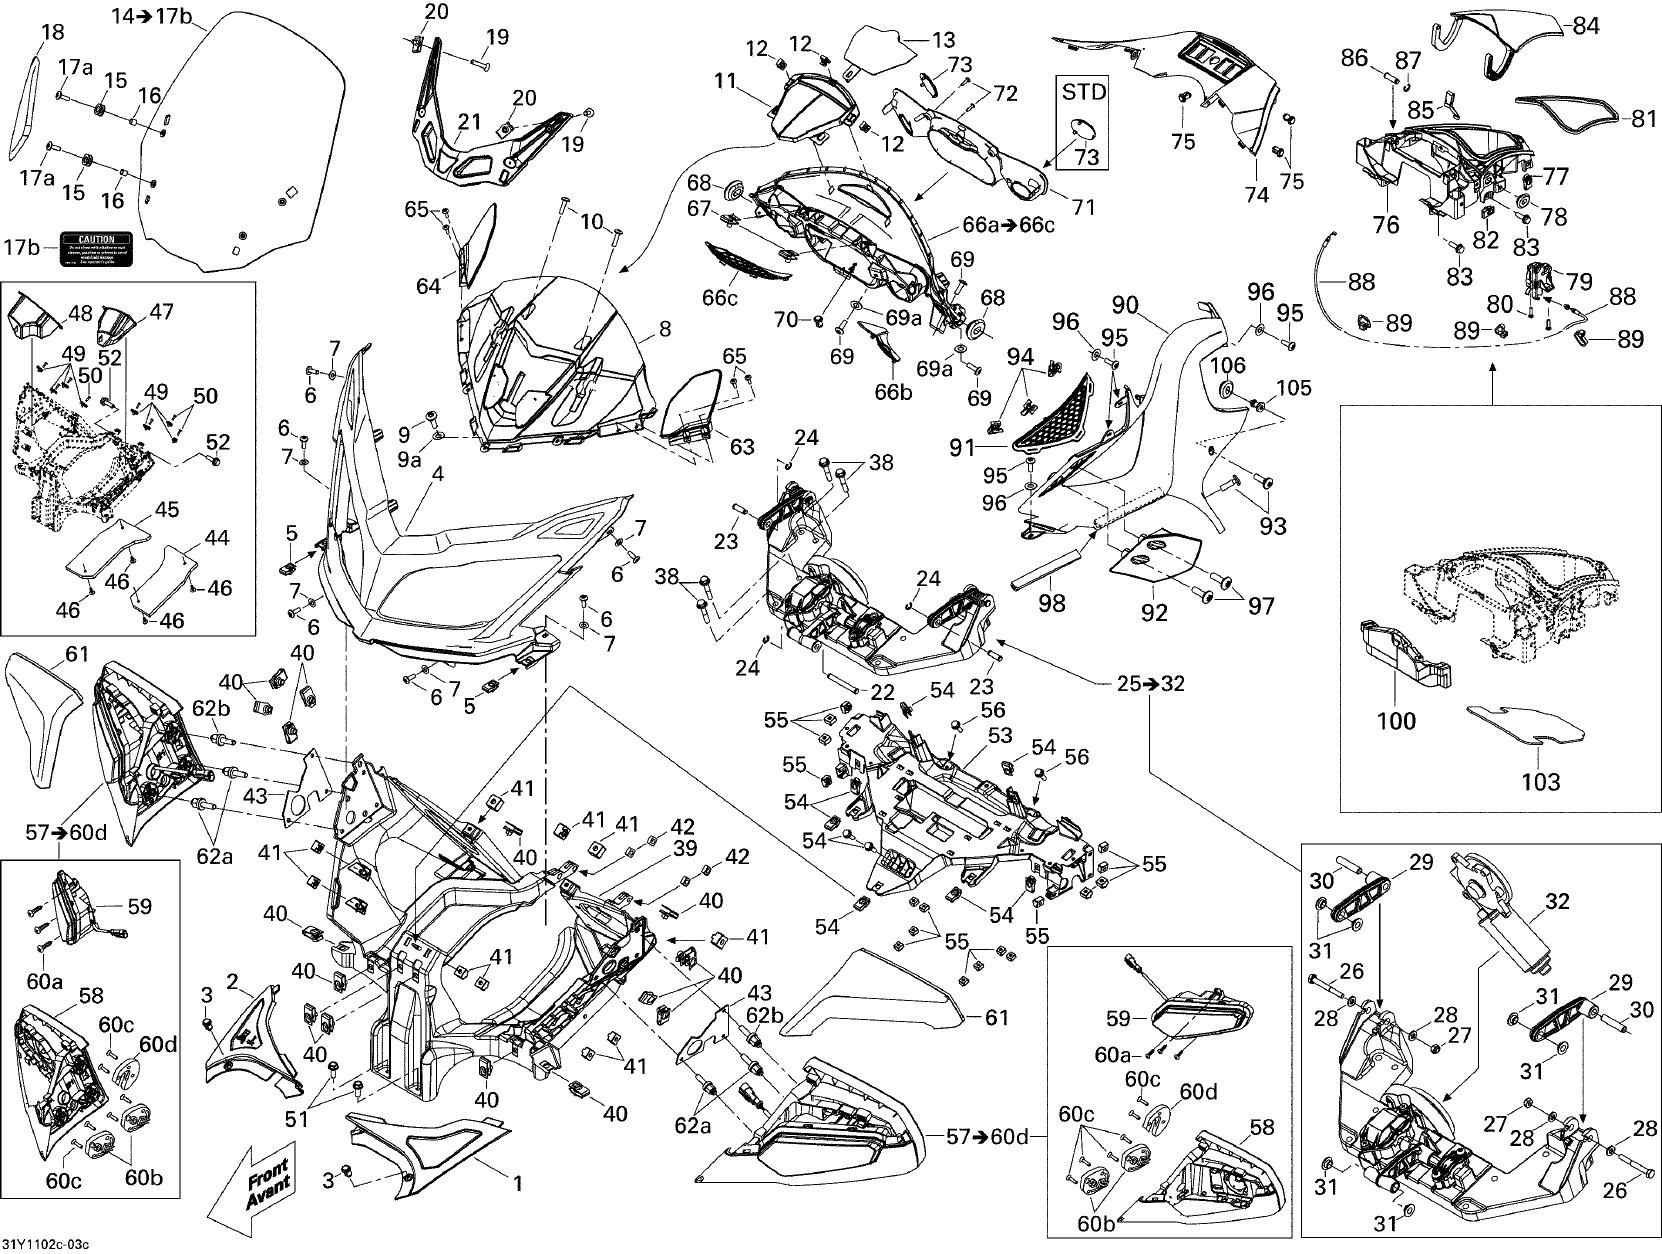 Diagram Can Am Renegade Atv Wiring Diagram Hd Version Ukworkwear Kinggo Fr